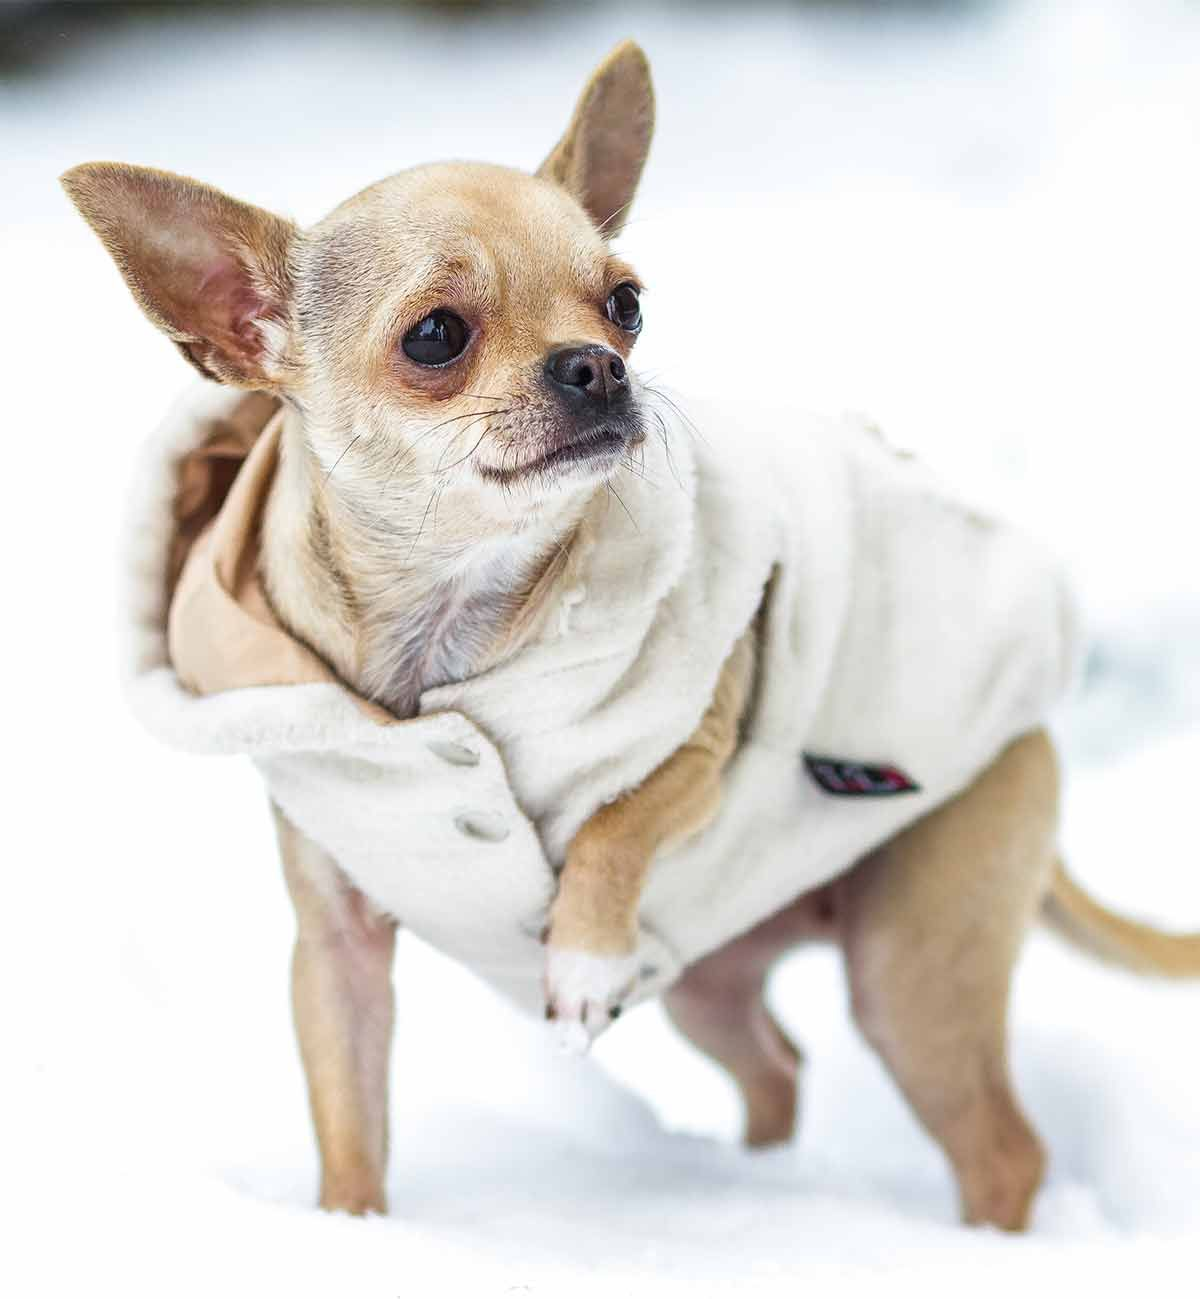 Chihuahua Clothes The Best Coats And Outfits For Chihuahua Dogs Chihuahua Dogs Clothes Chihuahua Puppy Clothes Chihuahua Clothes